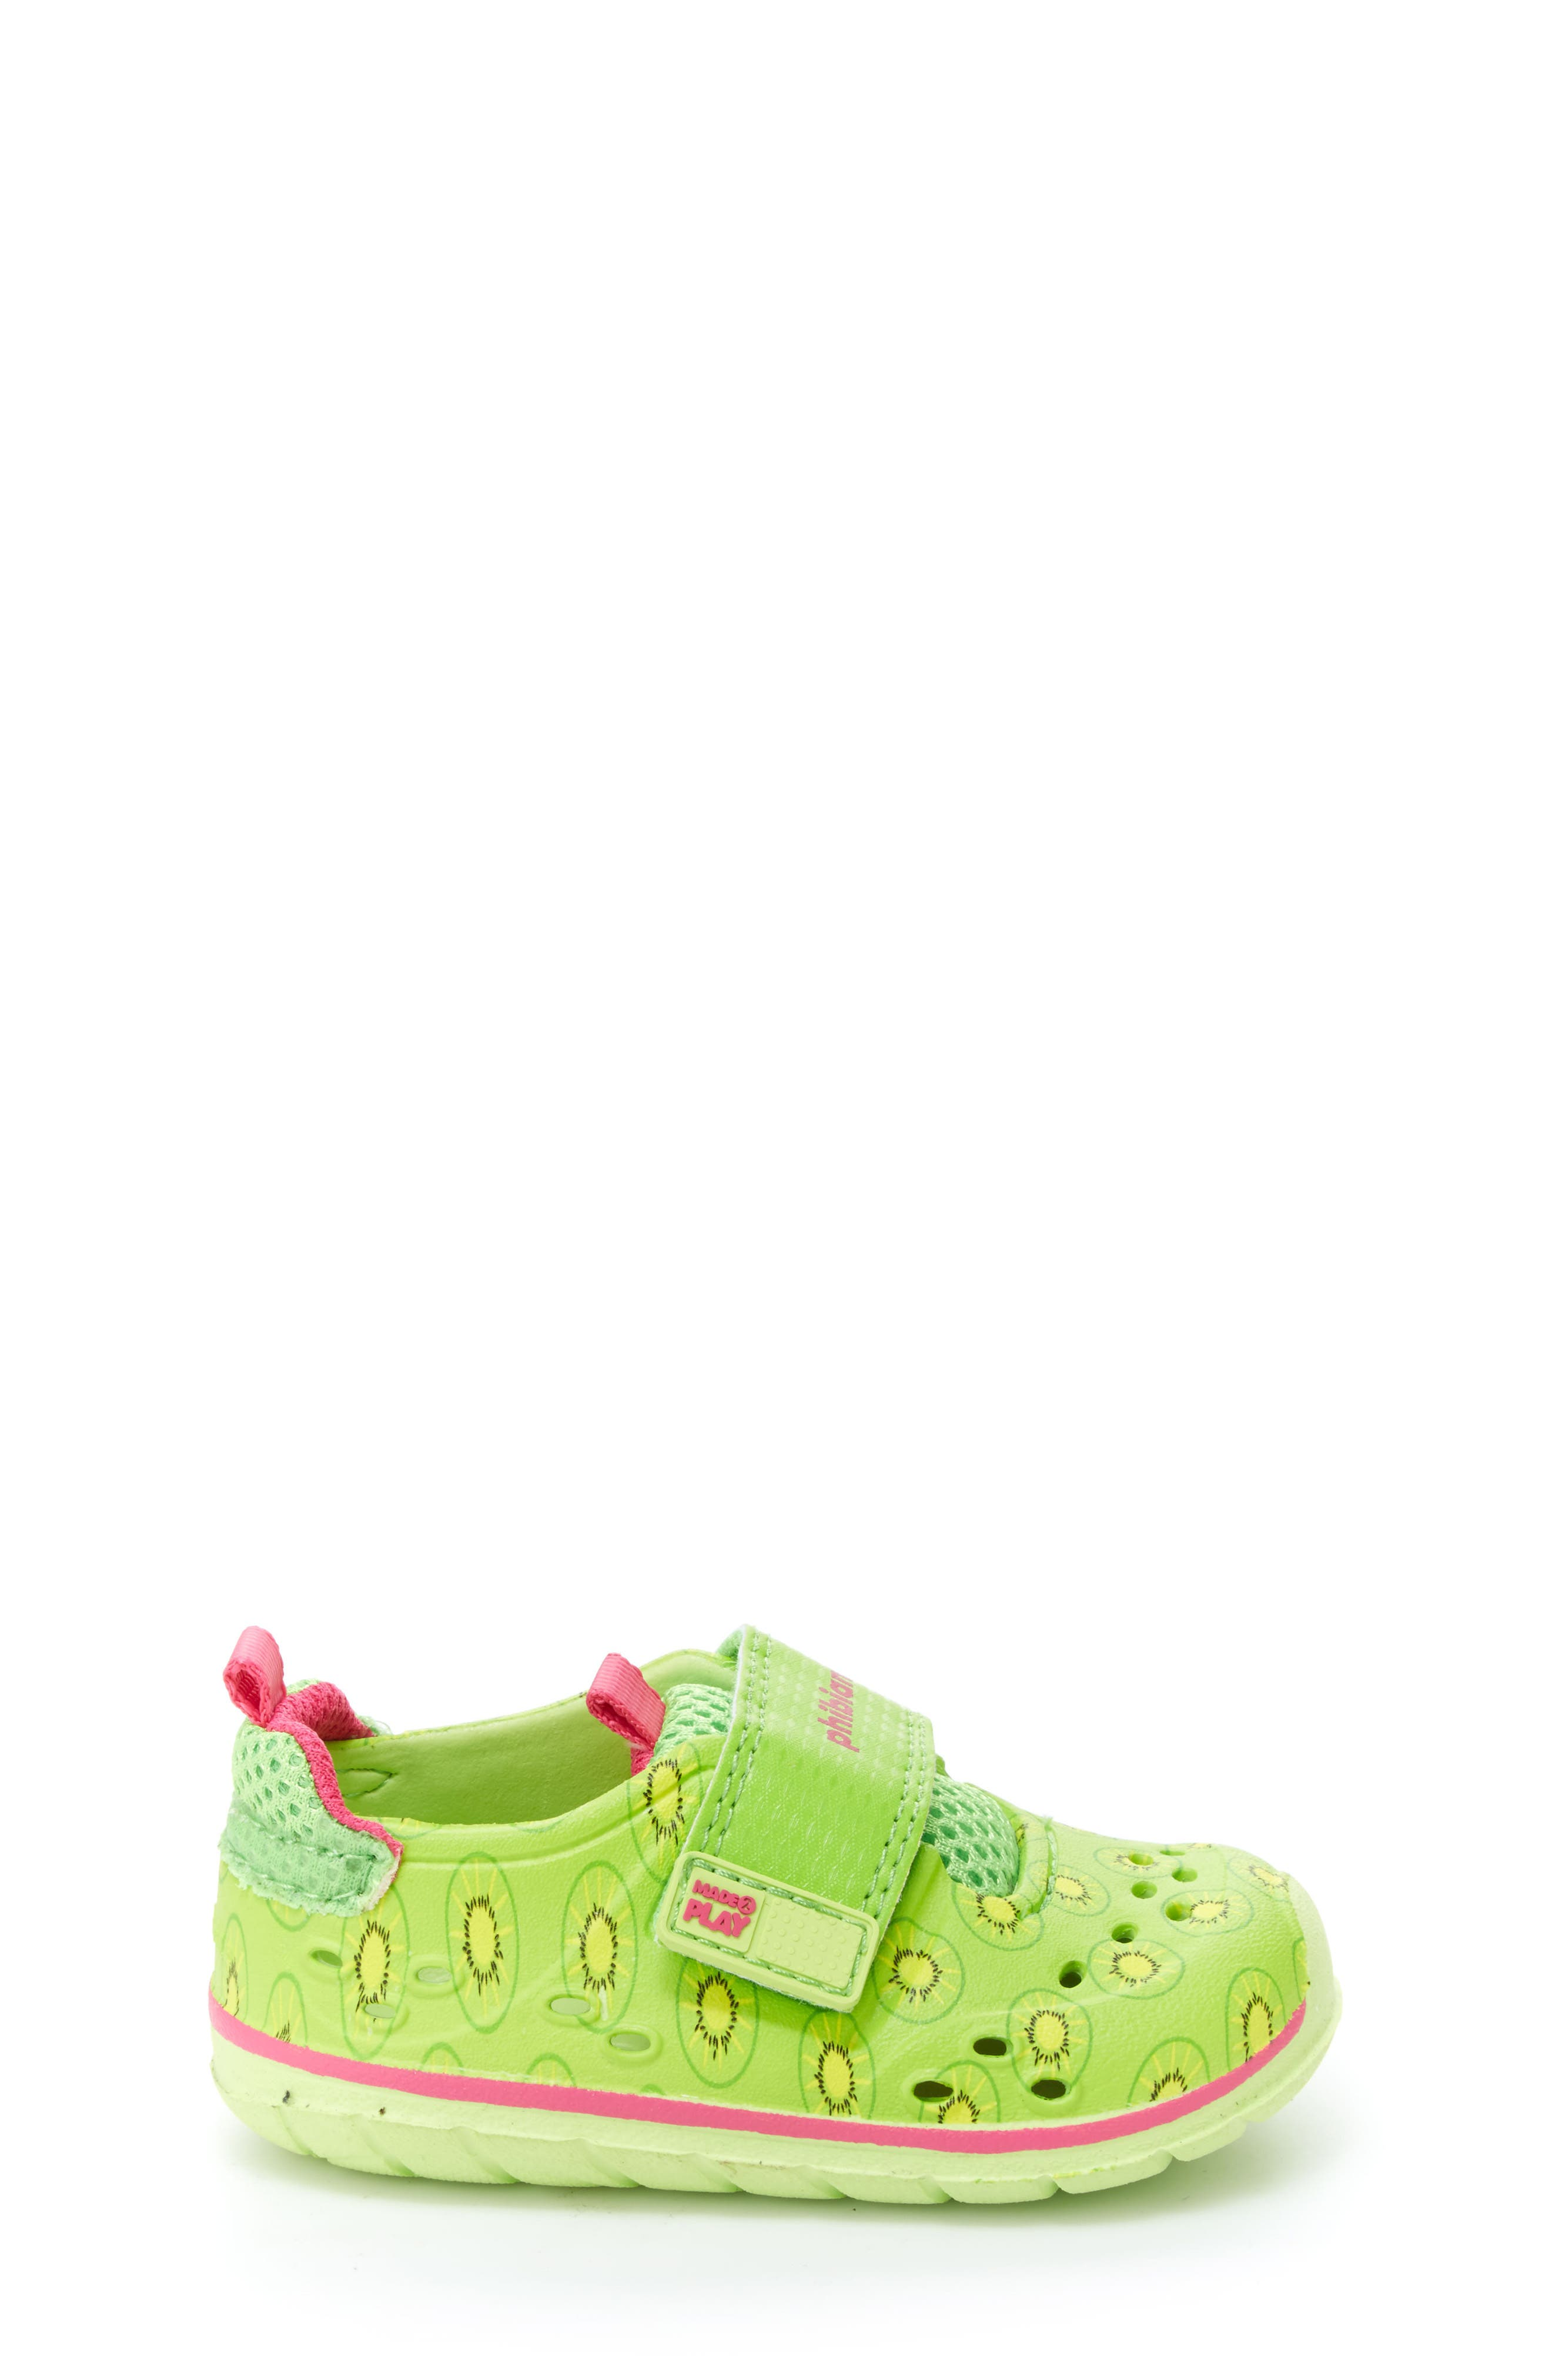 Made2Play<sup>®</sup> Phibian Sneaker,                             Alternate thumbnail 2, color,                             Green Kiwi